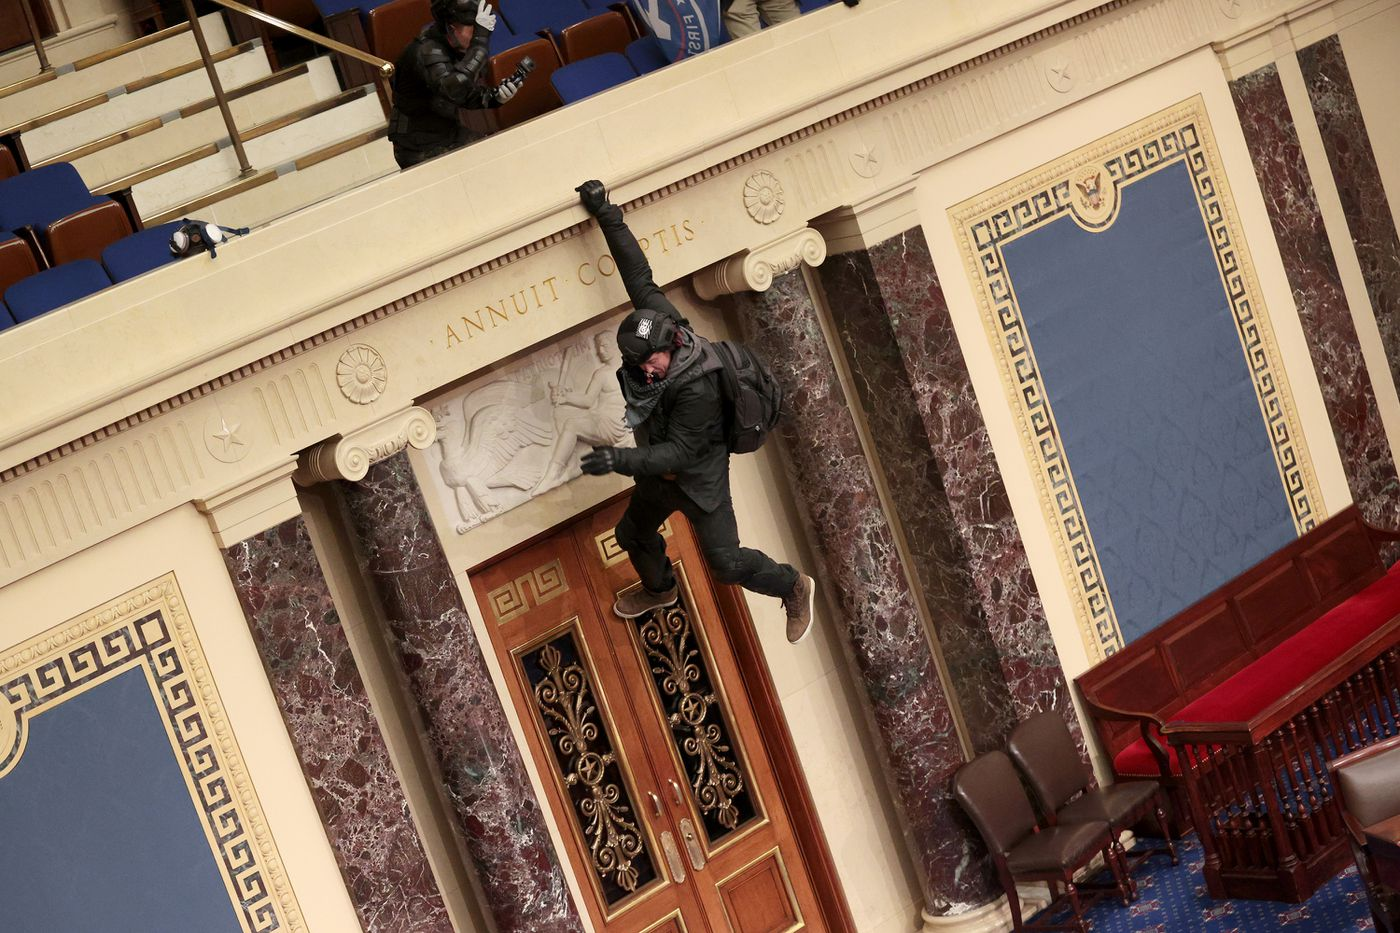 A protester is seen hanging from the balcony in the Senate Chamber on Wednesday, Jan. 6, 2021 in Washington, D.C. (Win McNamee/Getty Images/TNS)